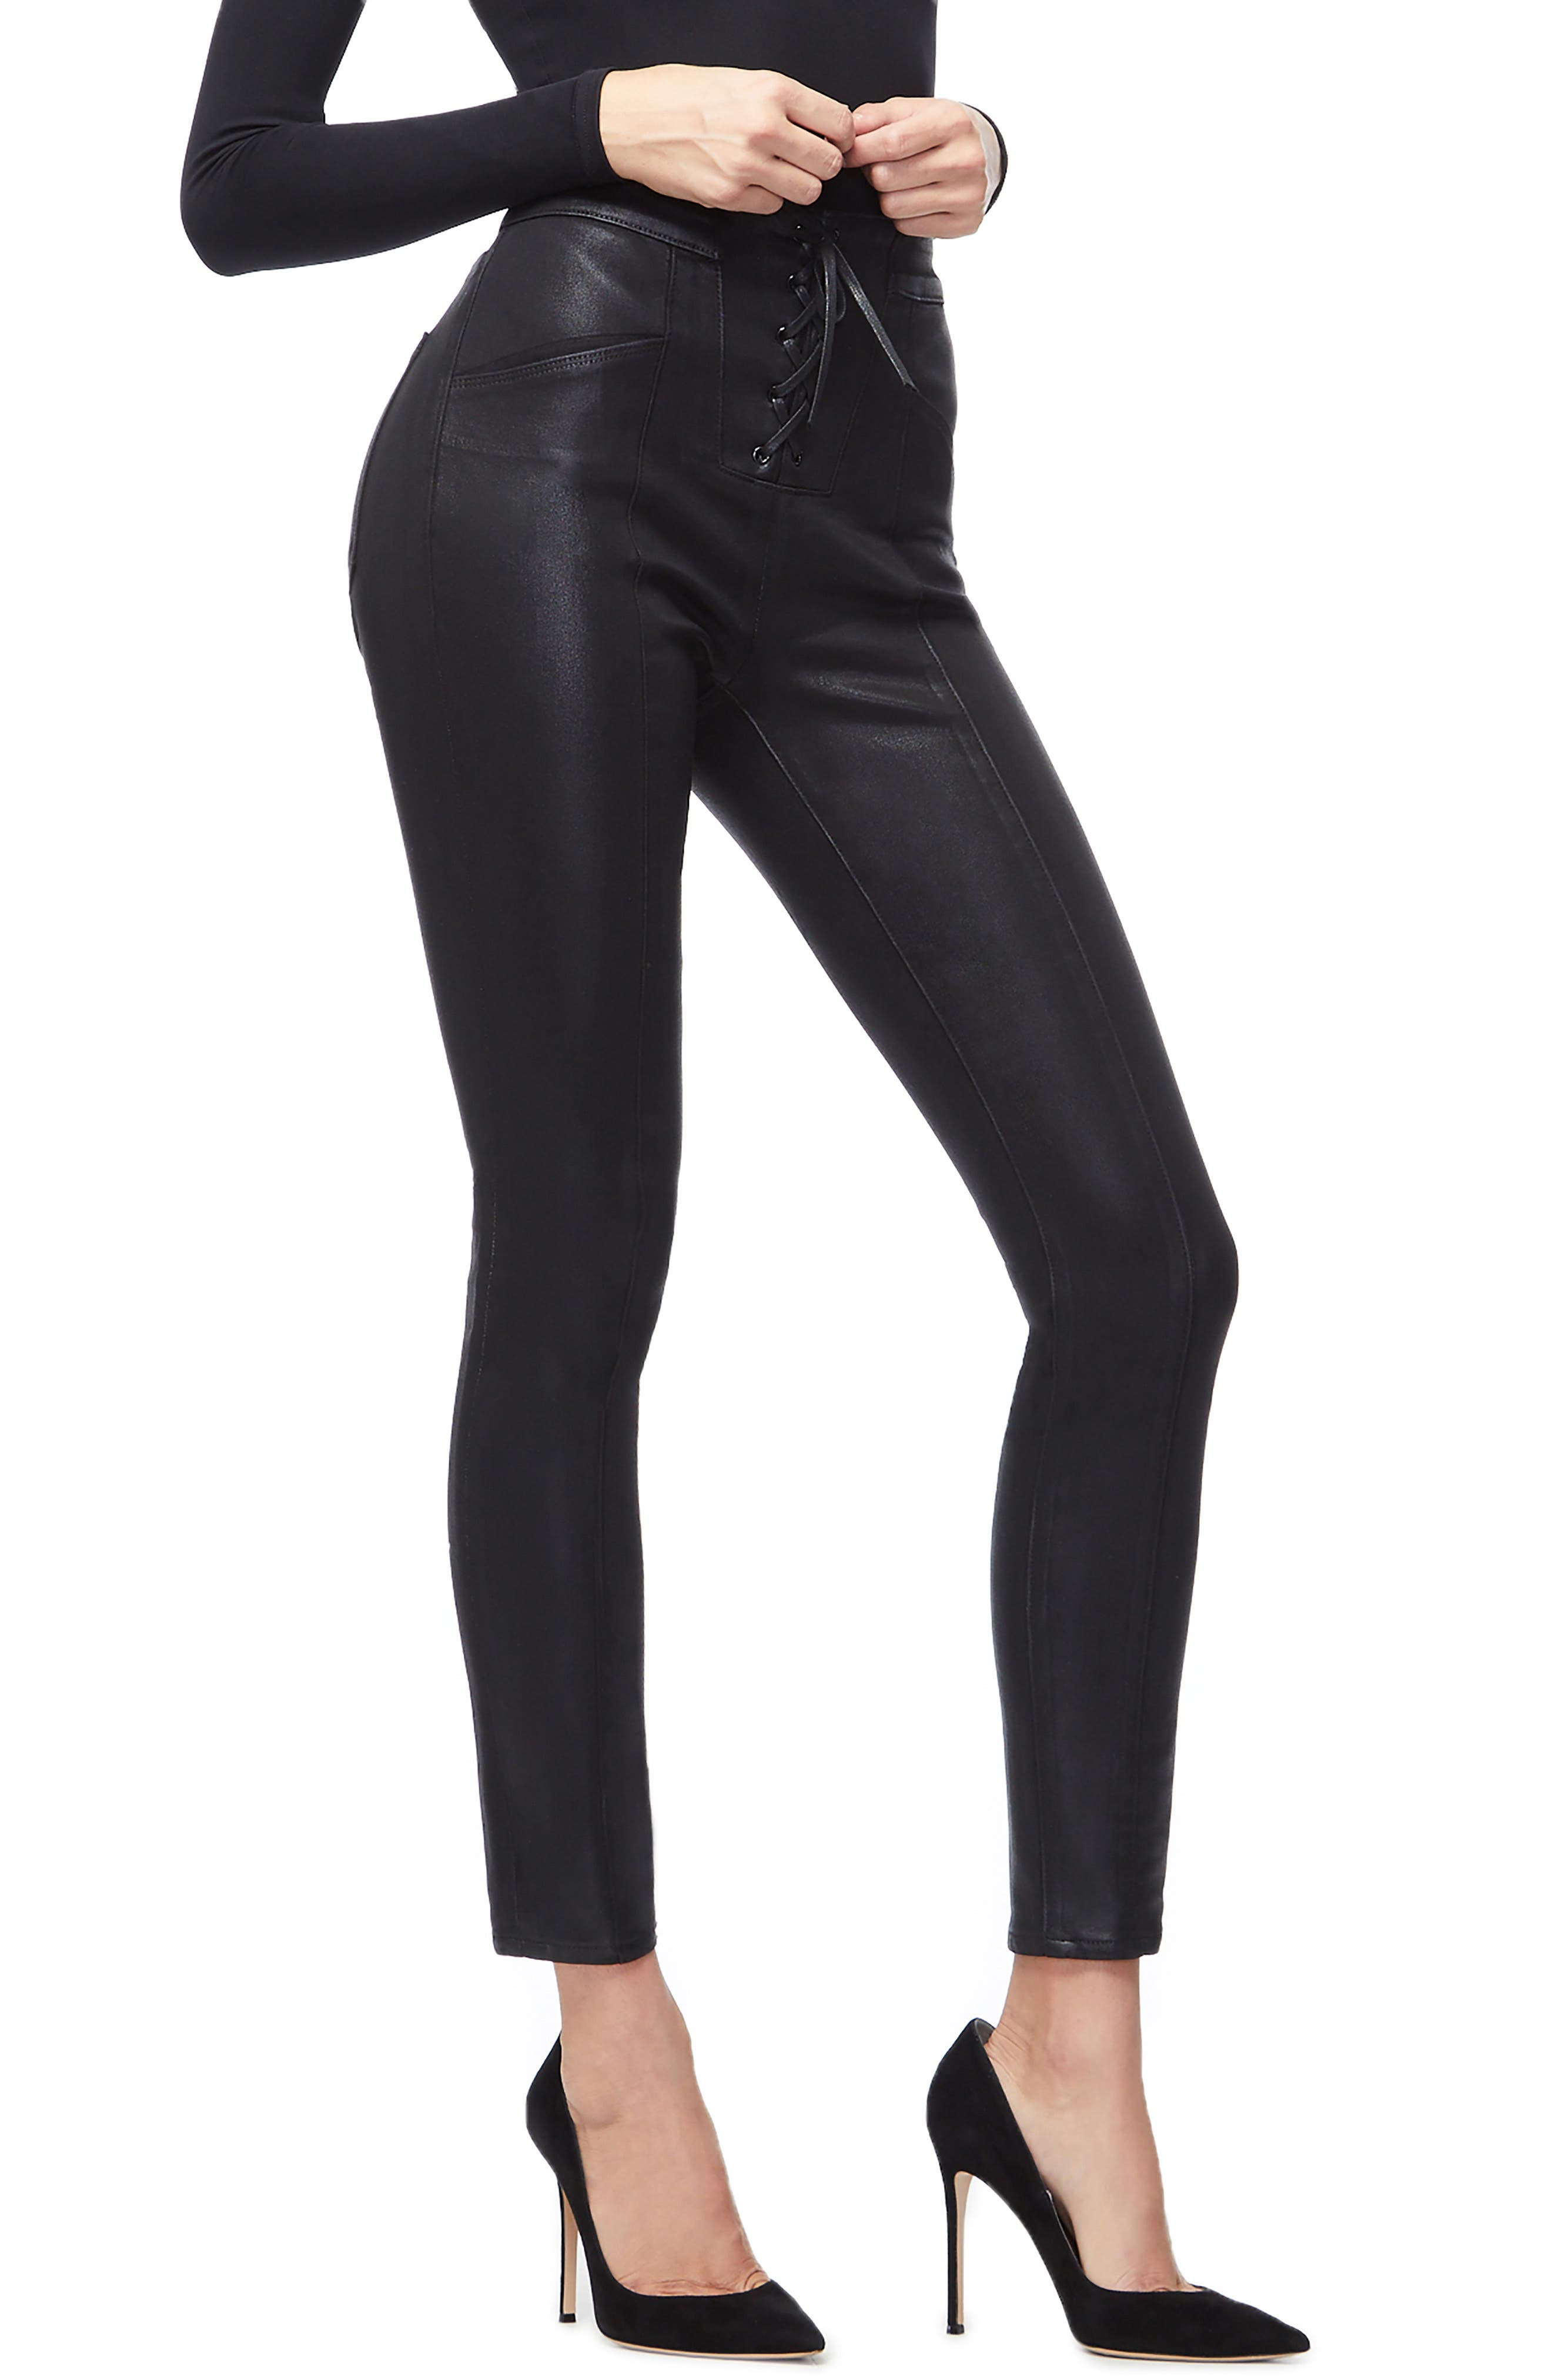 GOOD AMERICAN, Coated Lace-Up High Waist Skinny Jeans, Alternate thumbnail 4, color, BLACK034